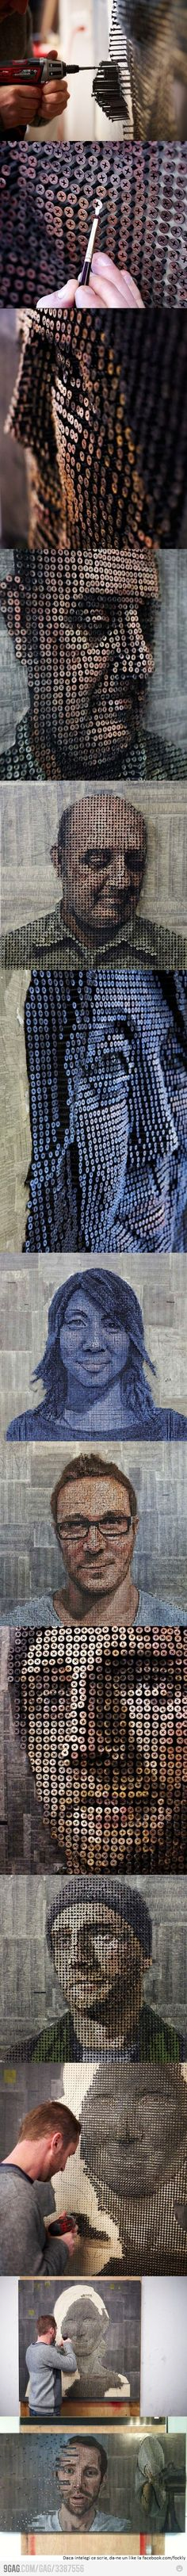 Andrew Myers 3D screw portraits